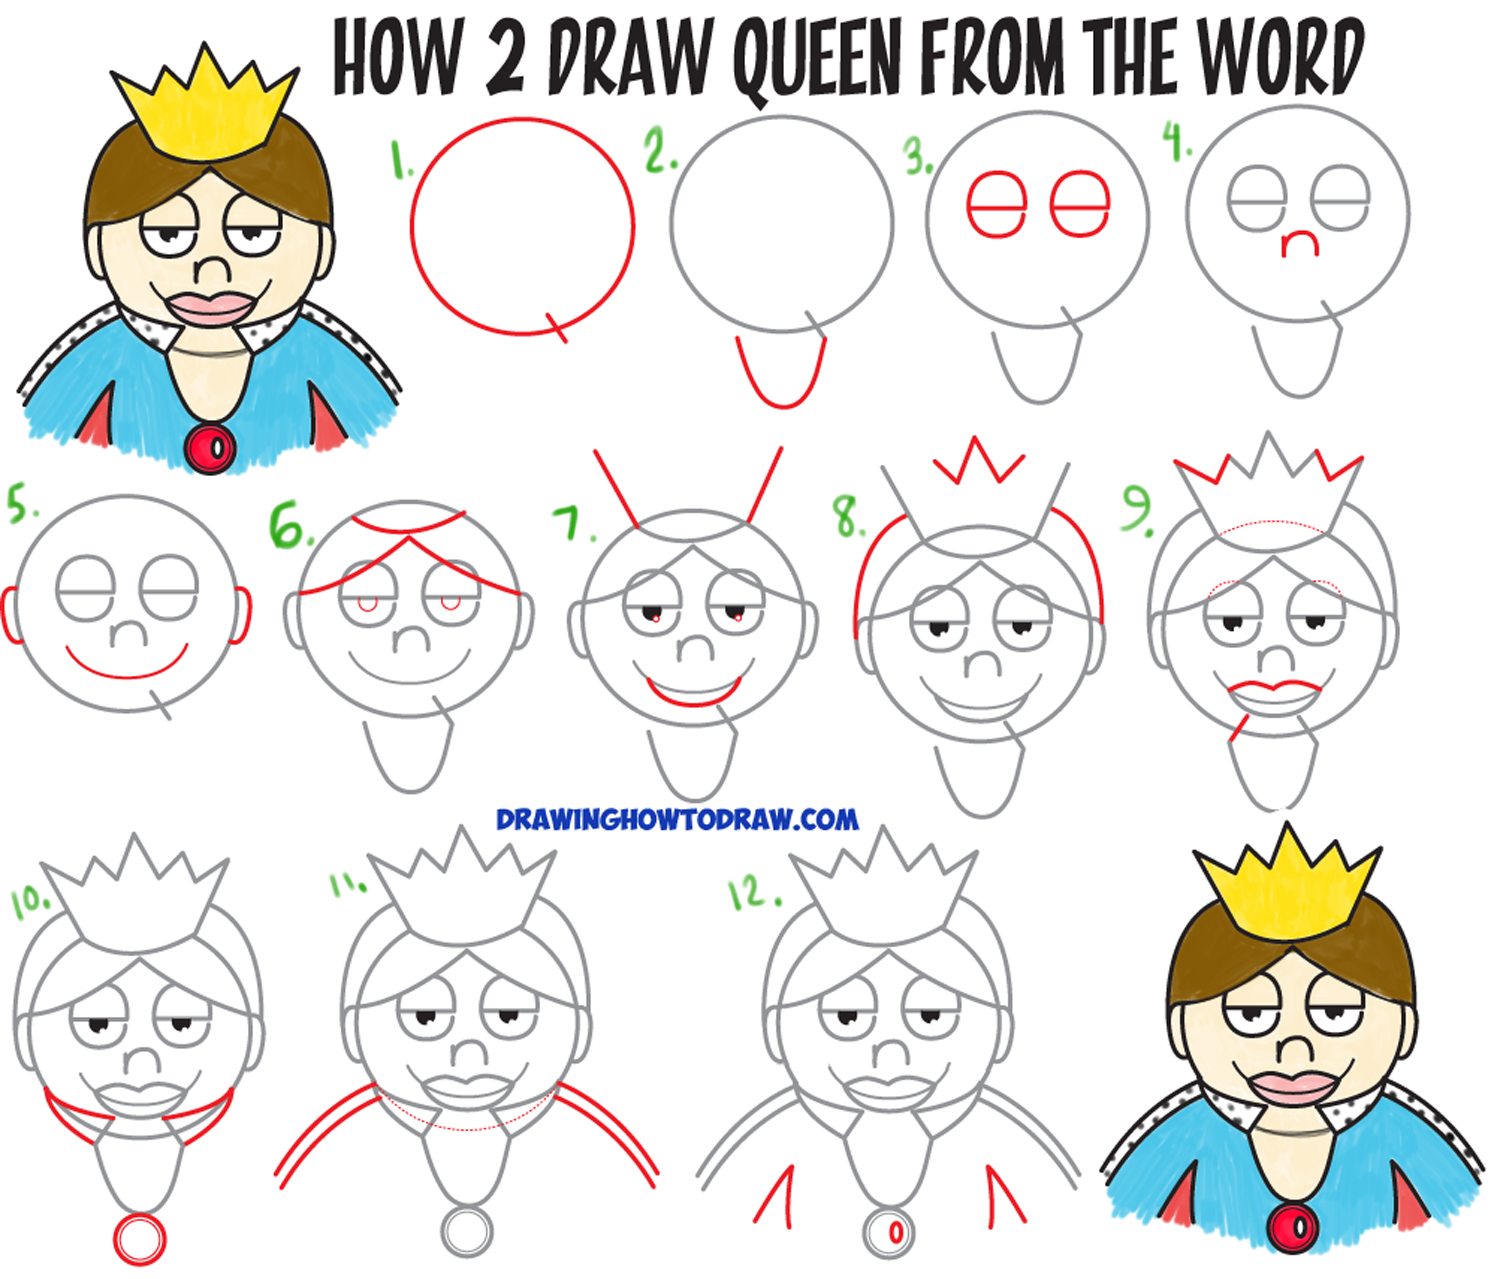 "How to Draw a Cartoon Queen from the word ""Queen"" Easy Step by Step Drawing Tutorial for Kids"